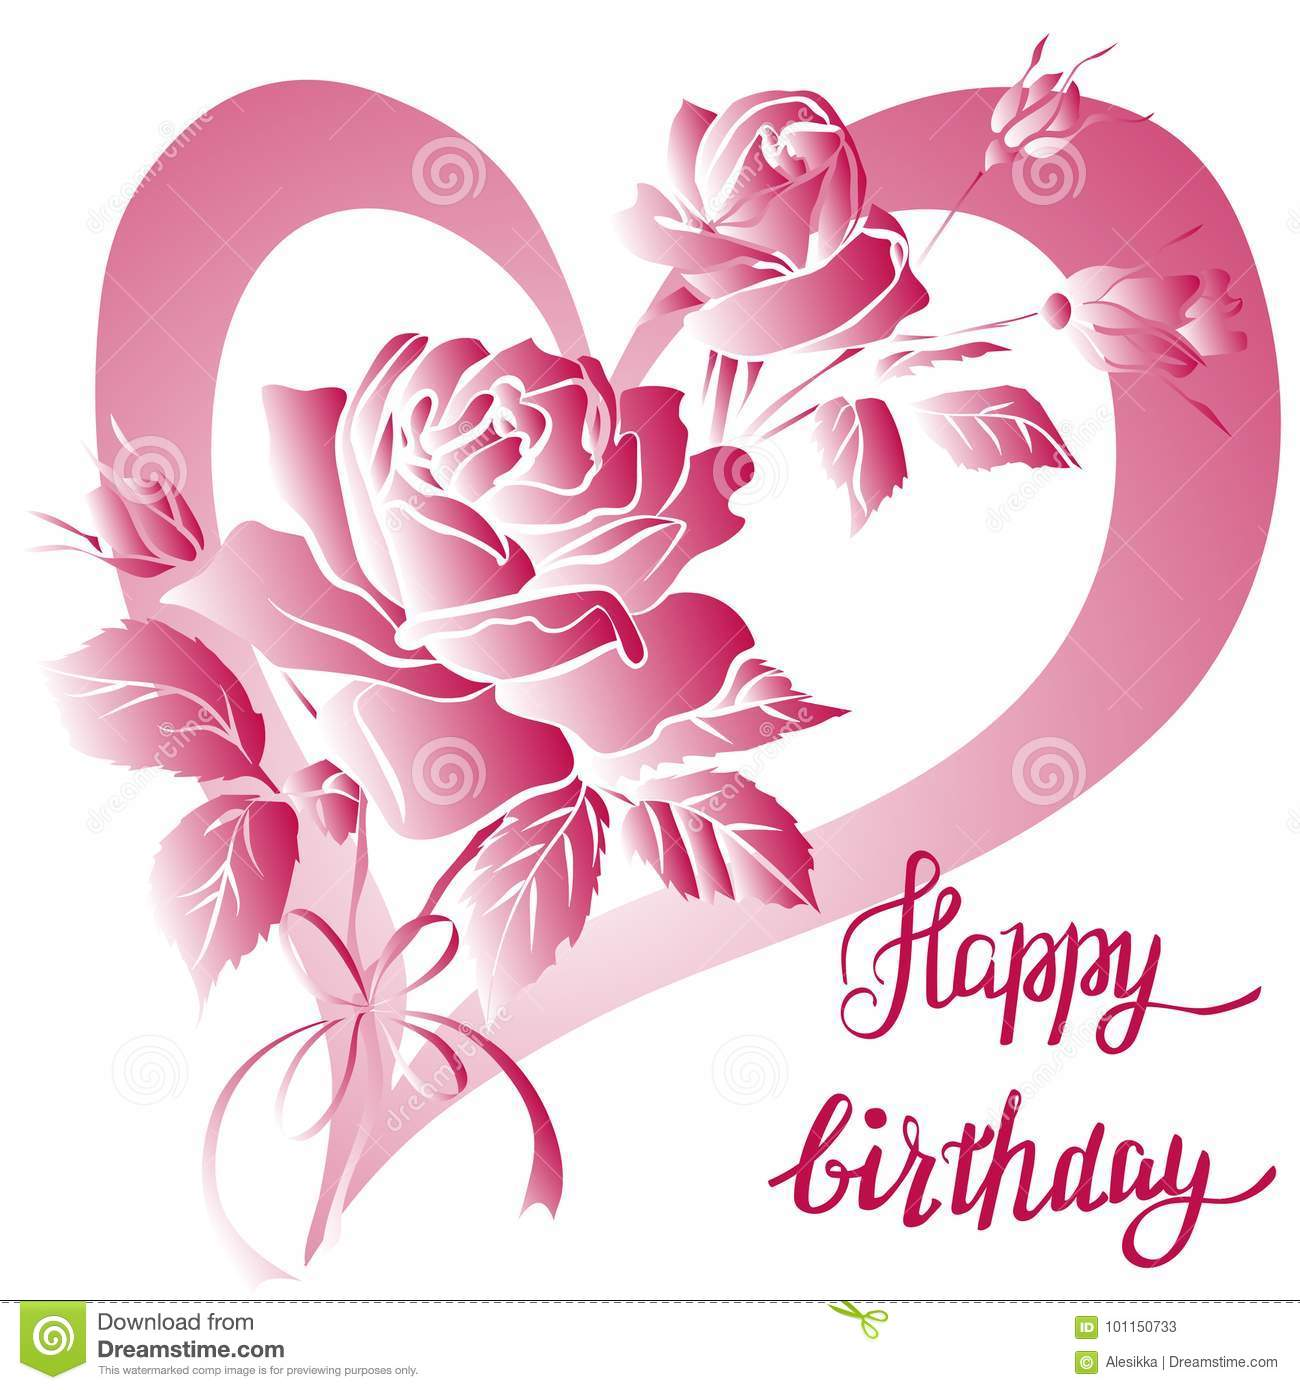 Happy Birthday Lettering And Rose Are On Whitebackground Greeting Card With Fun White Roses Vector Illustration